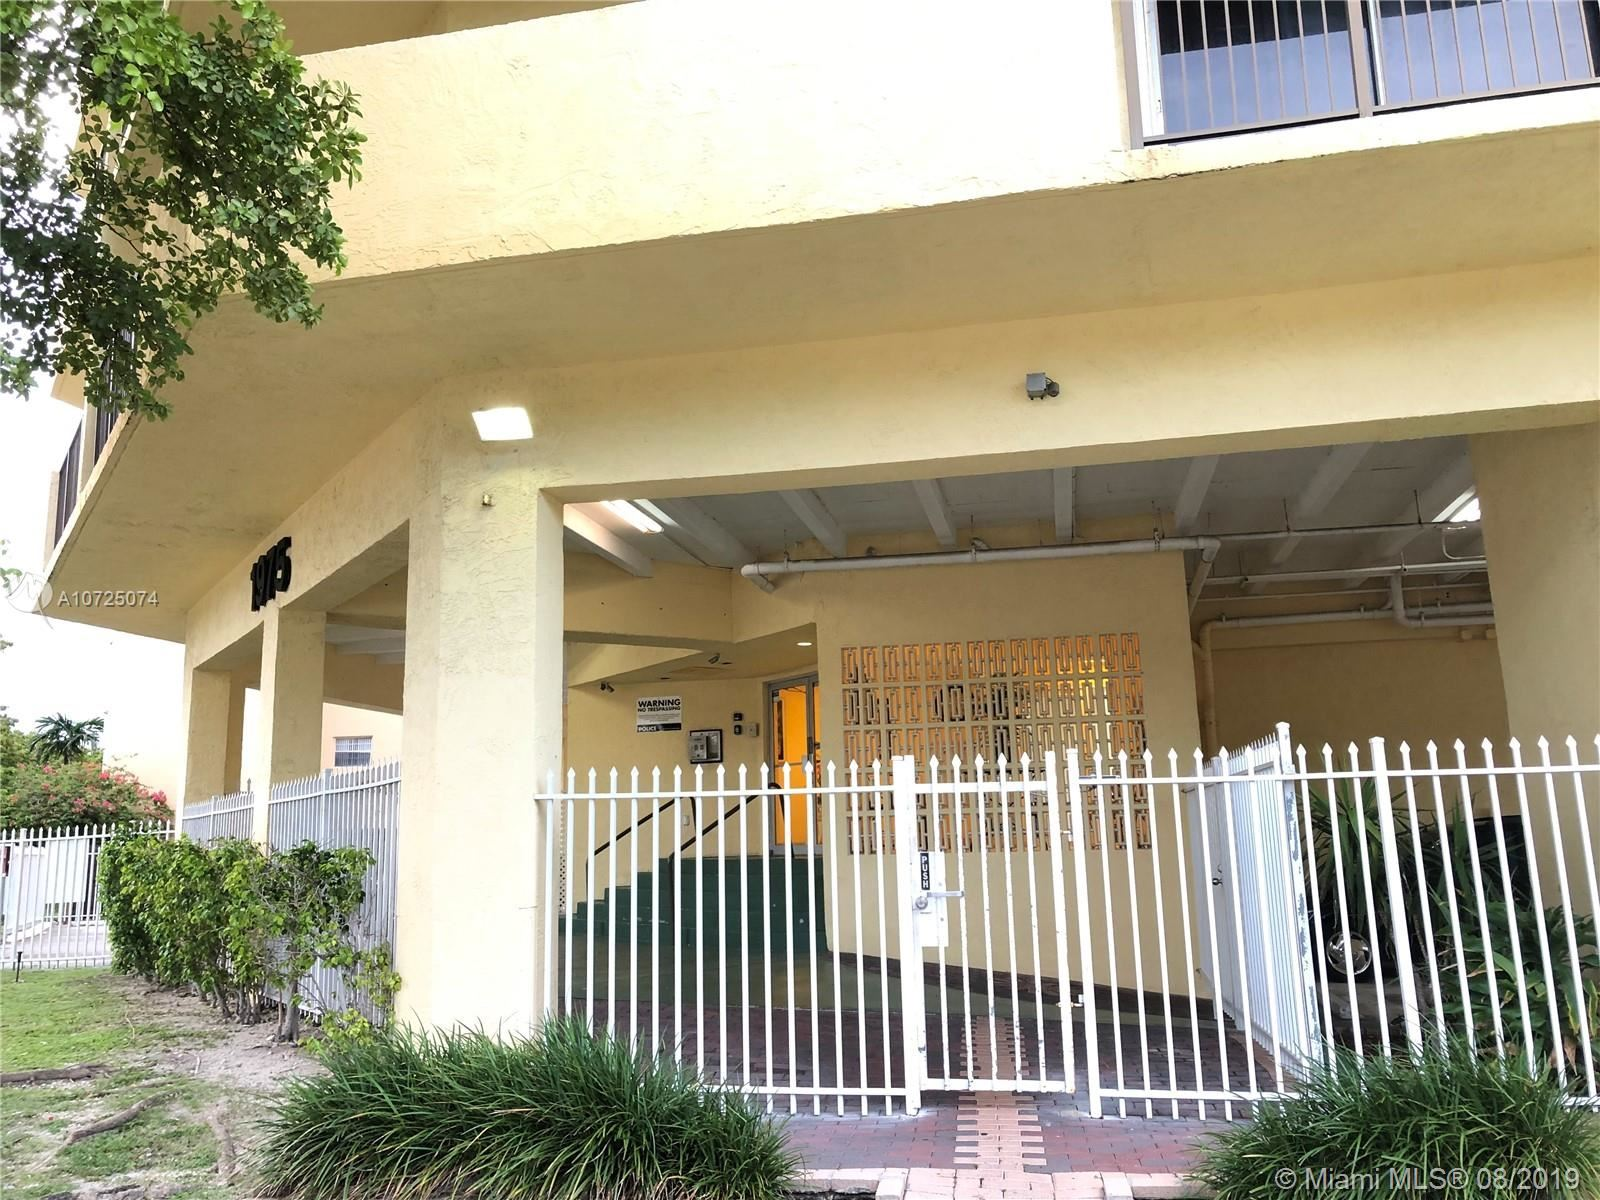 Photo 14 of Listing MLS a10725074 in 1975 Normandy Dr #504 Miami Beach FL 33141